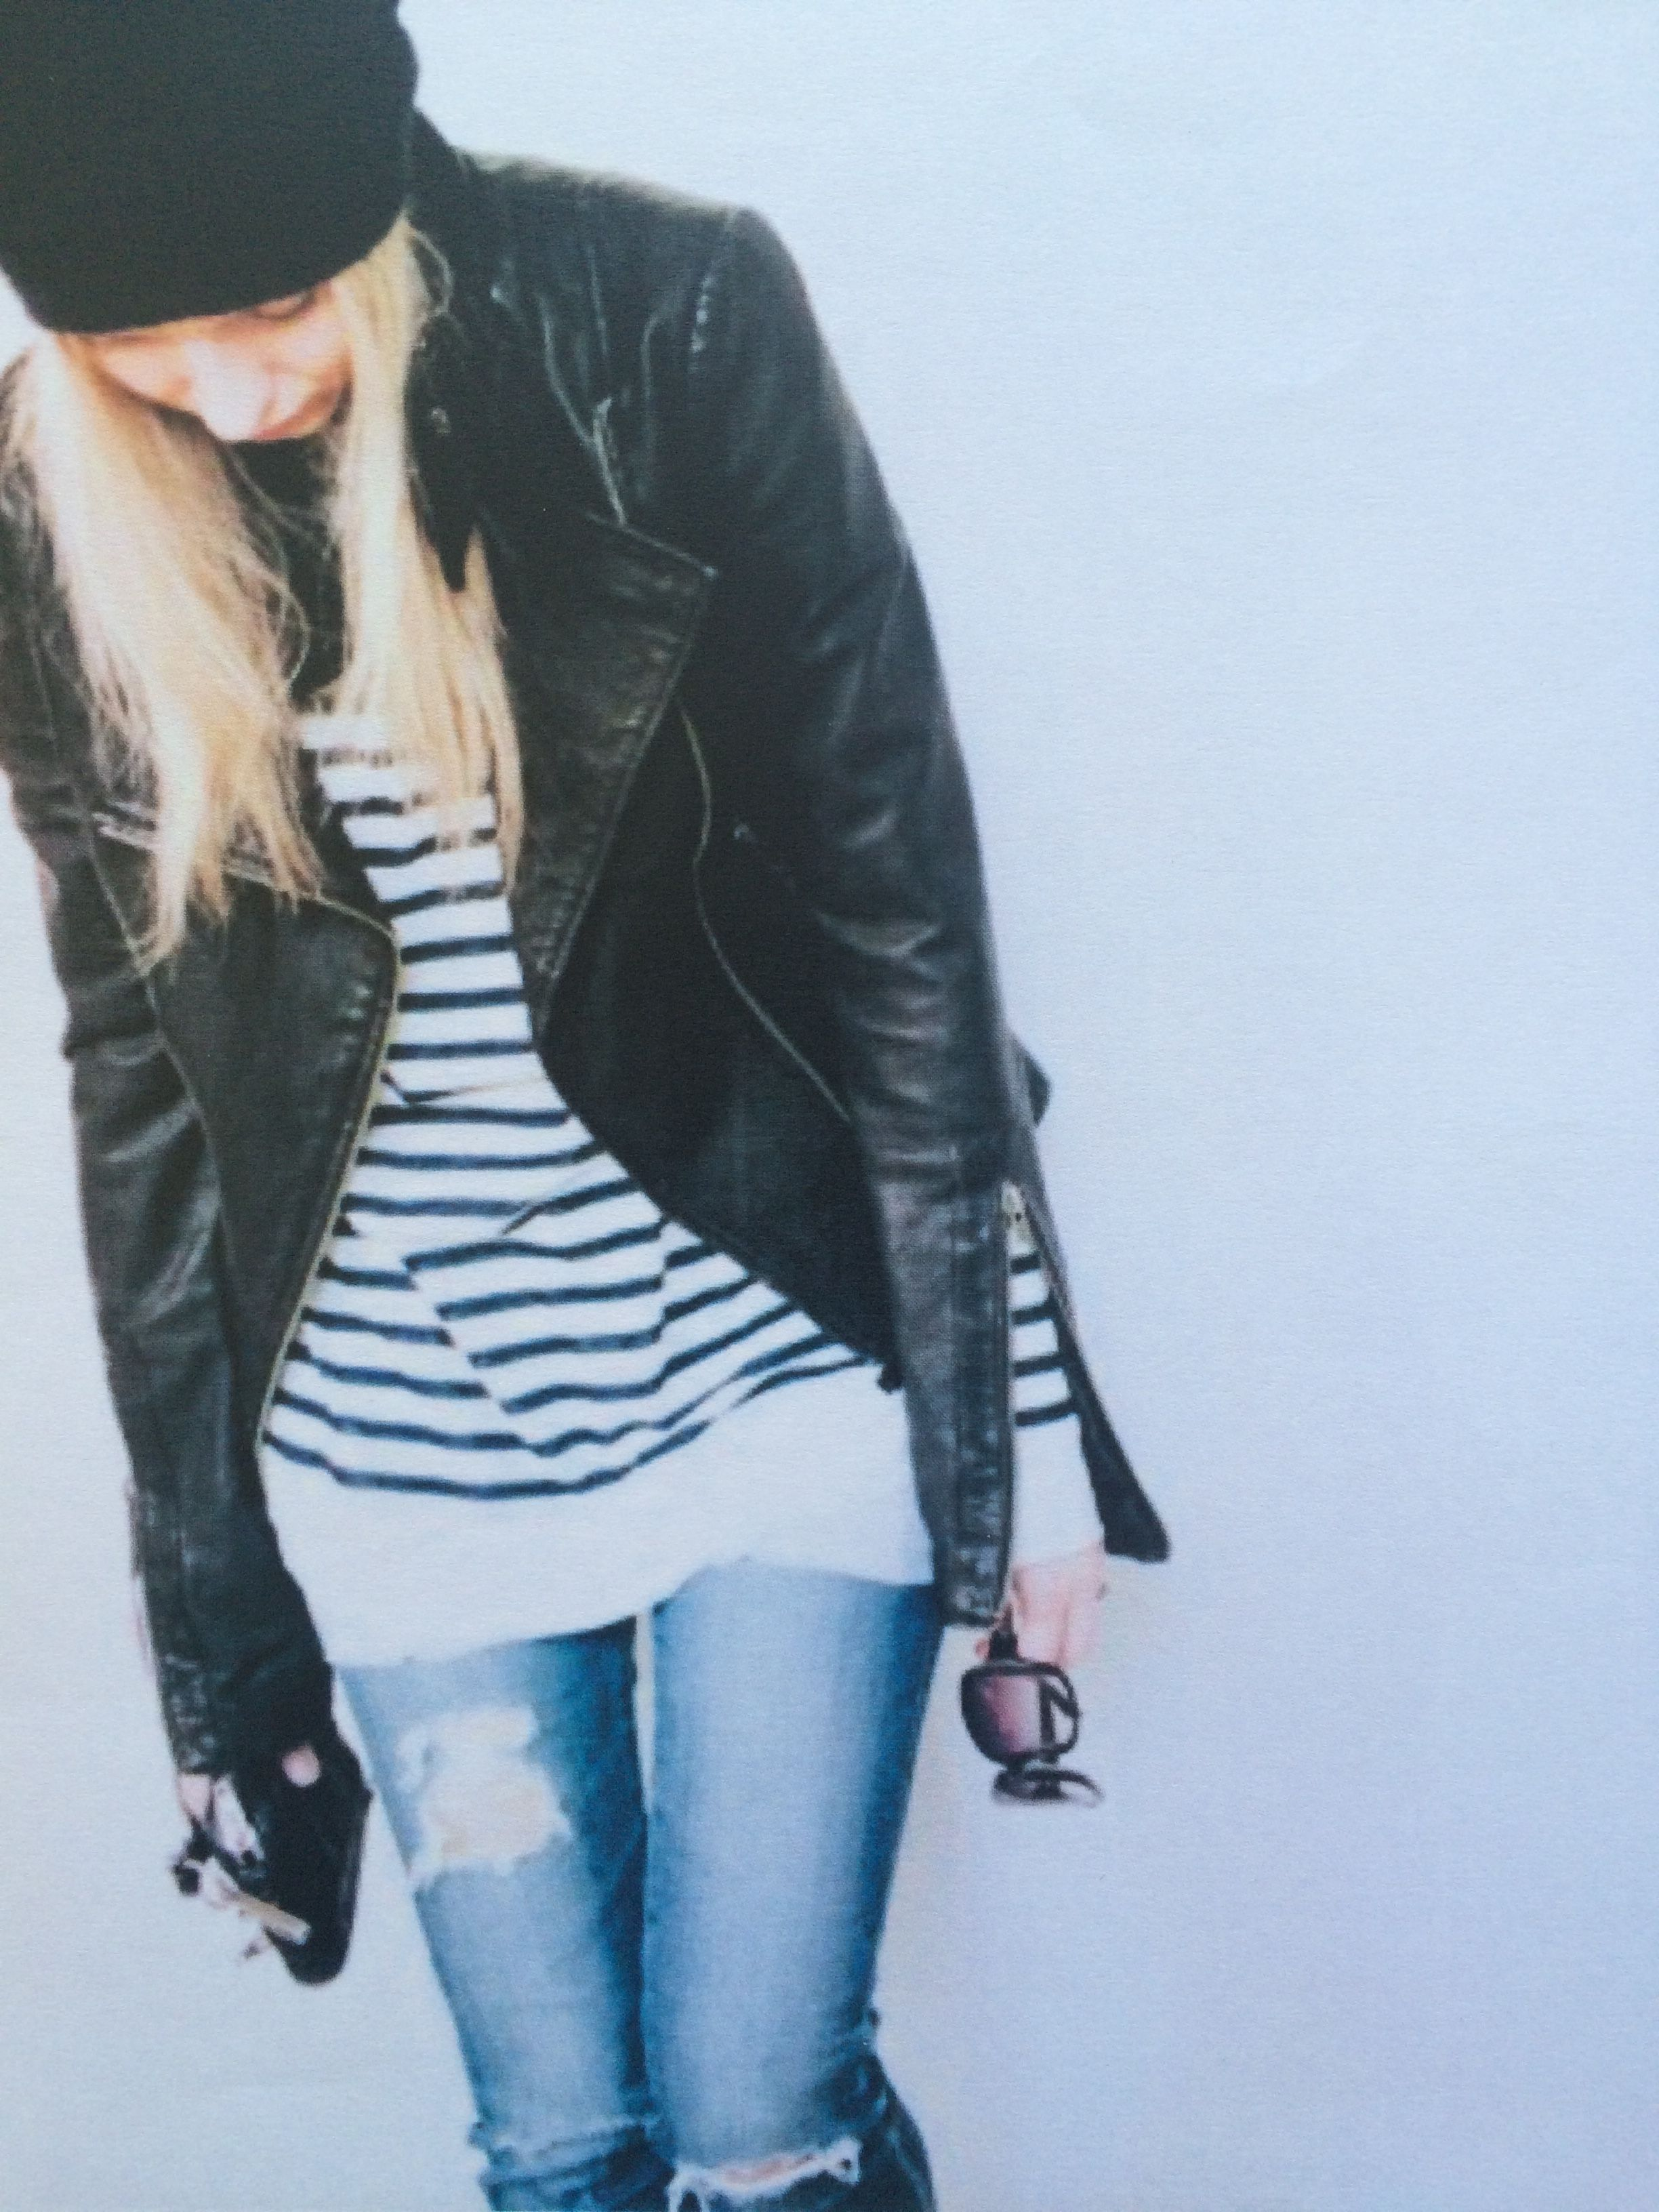 Leather Jacket Striped Top And Ripped Jeans Ripped Jeans Jackets Leather Jacket [ 3264 x 2448 Pixel ]